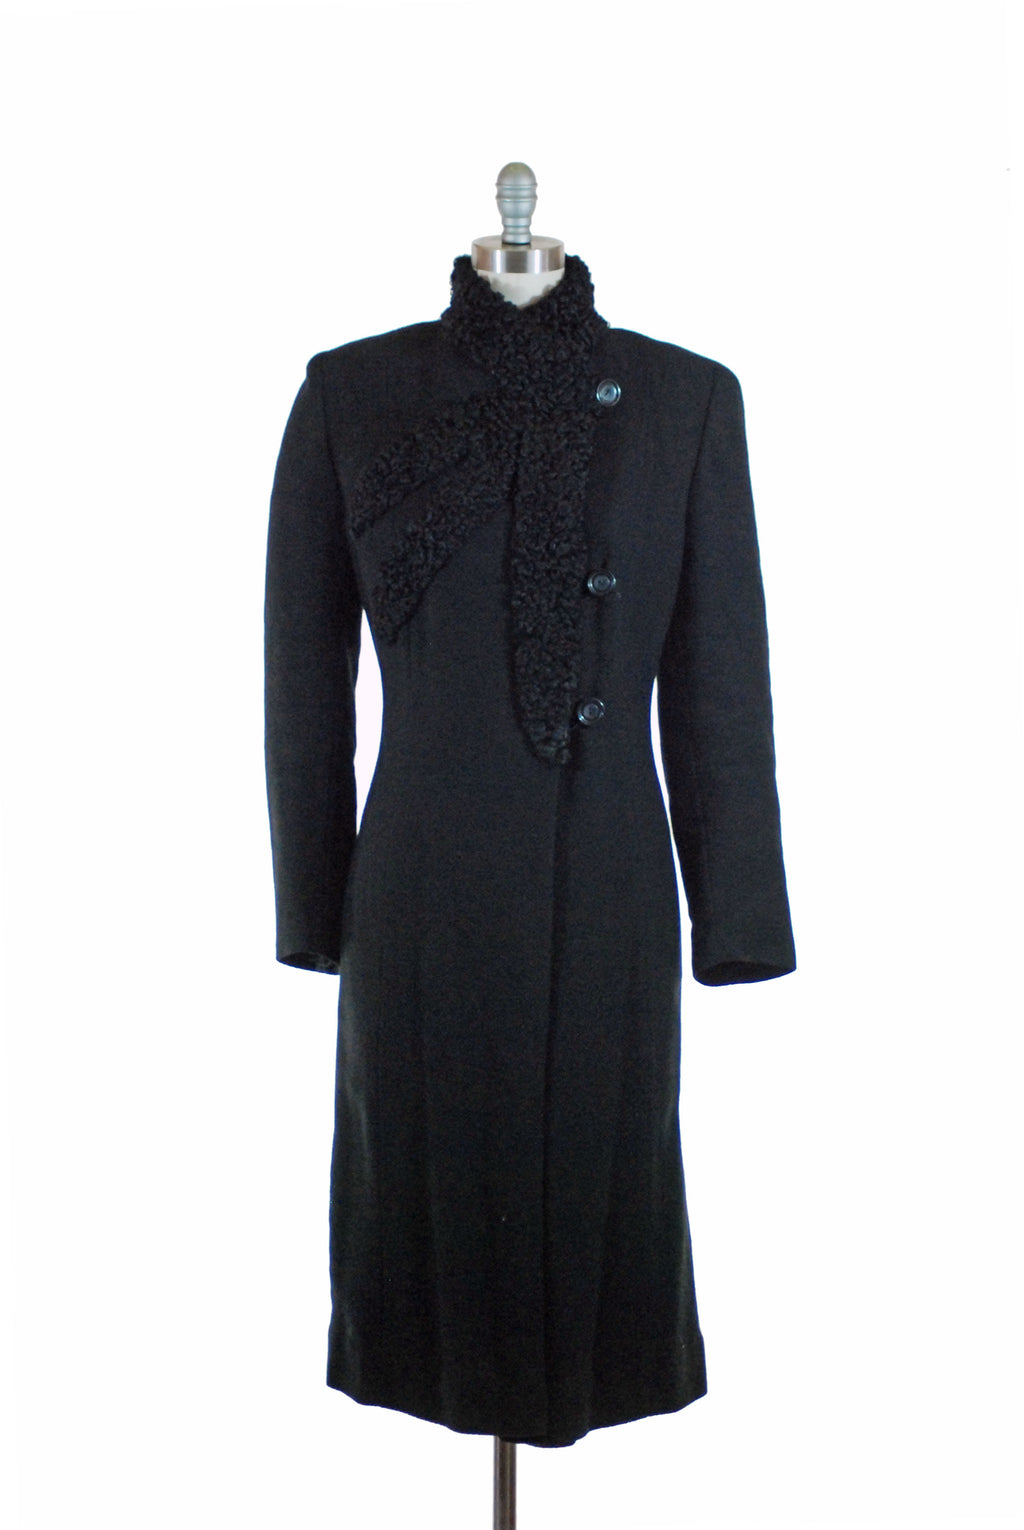 Sleek Mid 1930s Deco Era Coat of Black Wool with Asymmetric Astrakhan Lamb Trim XL